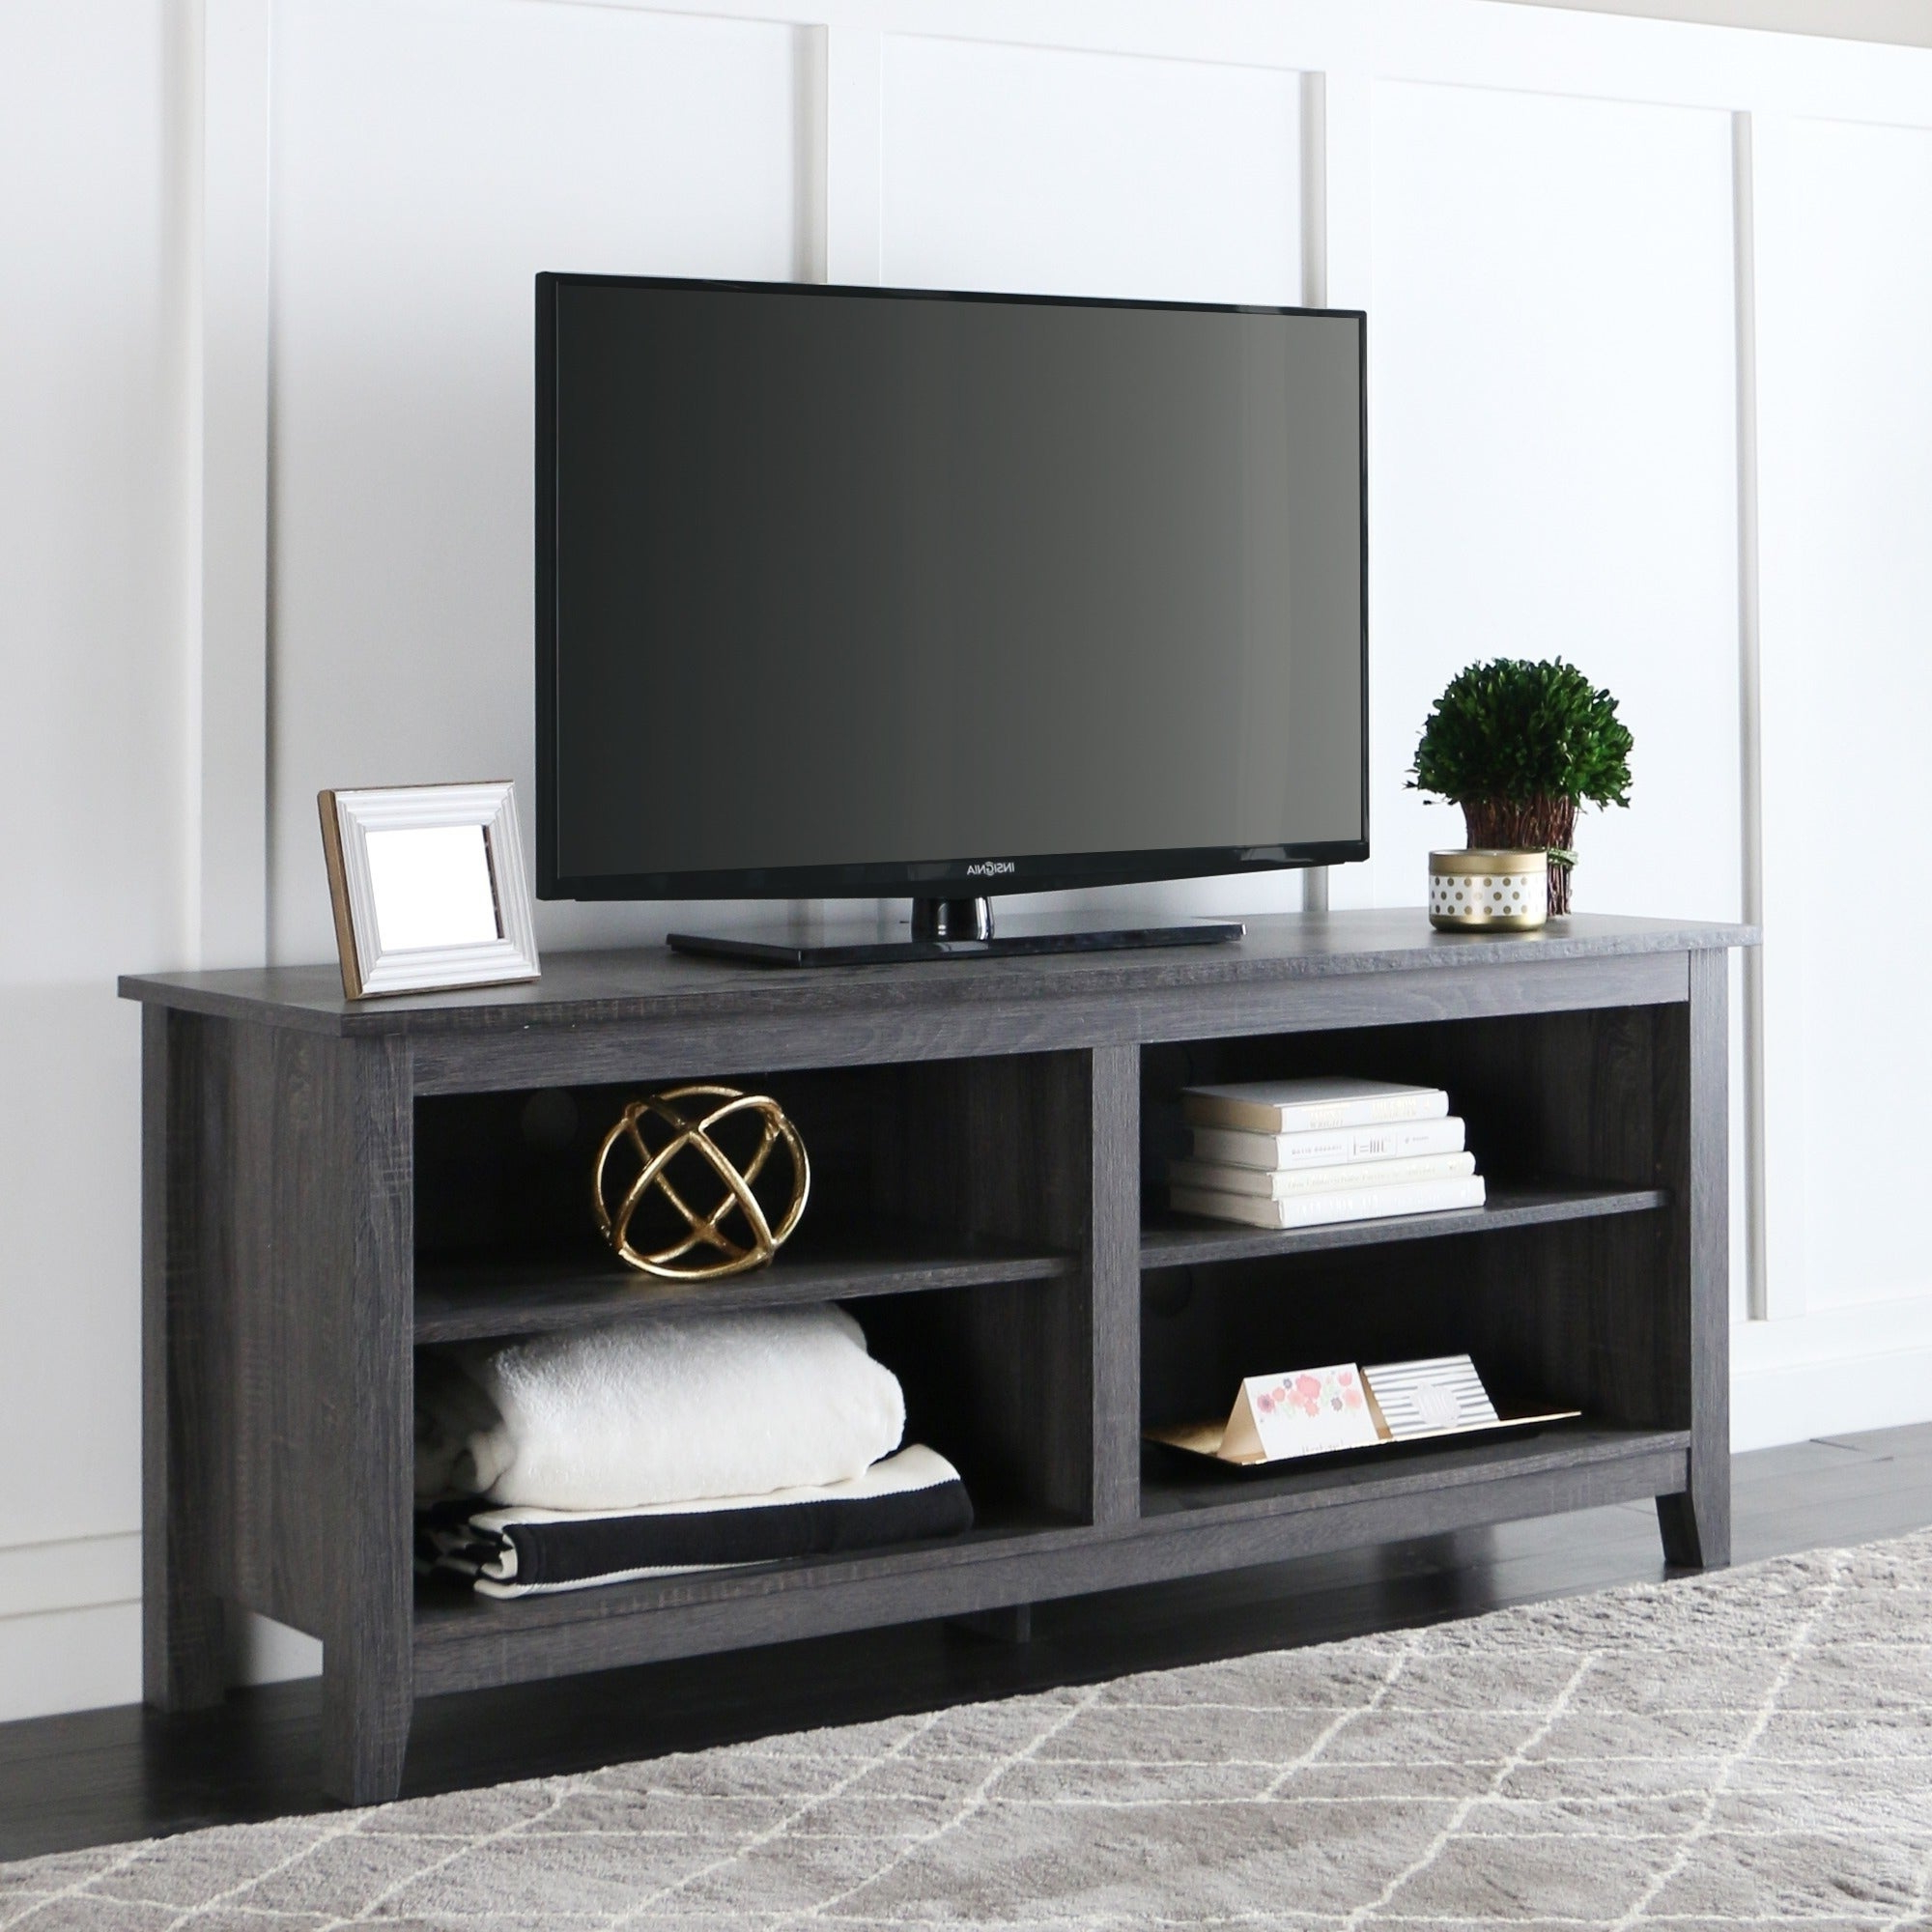 Latest Shop 58 Inch Wood Charcoal Grey Tv Stand – Free Shipping Pertaining To Delphi Grey Tv Stands (View 3 of 25)